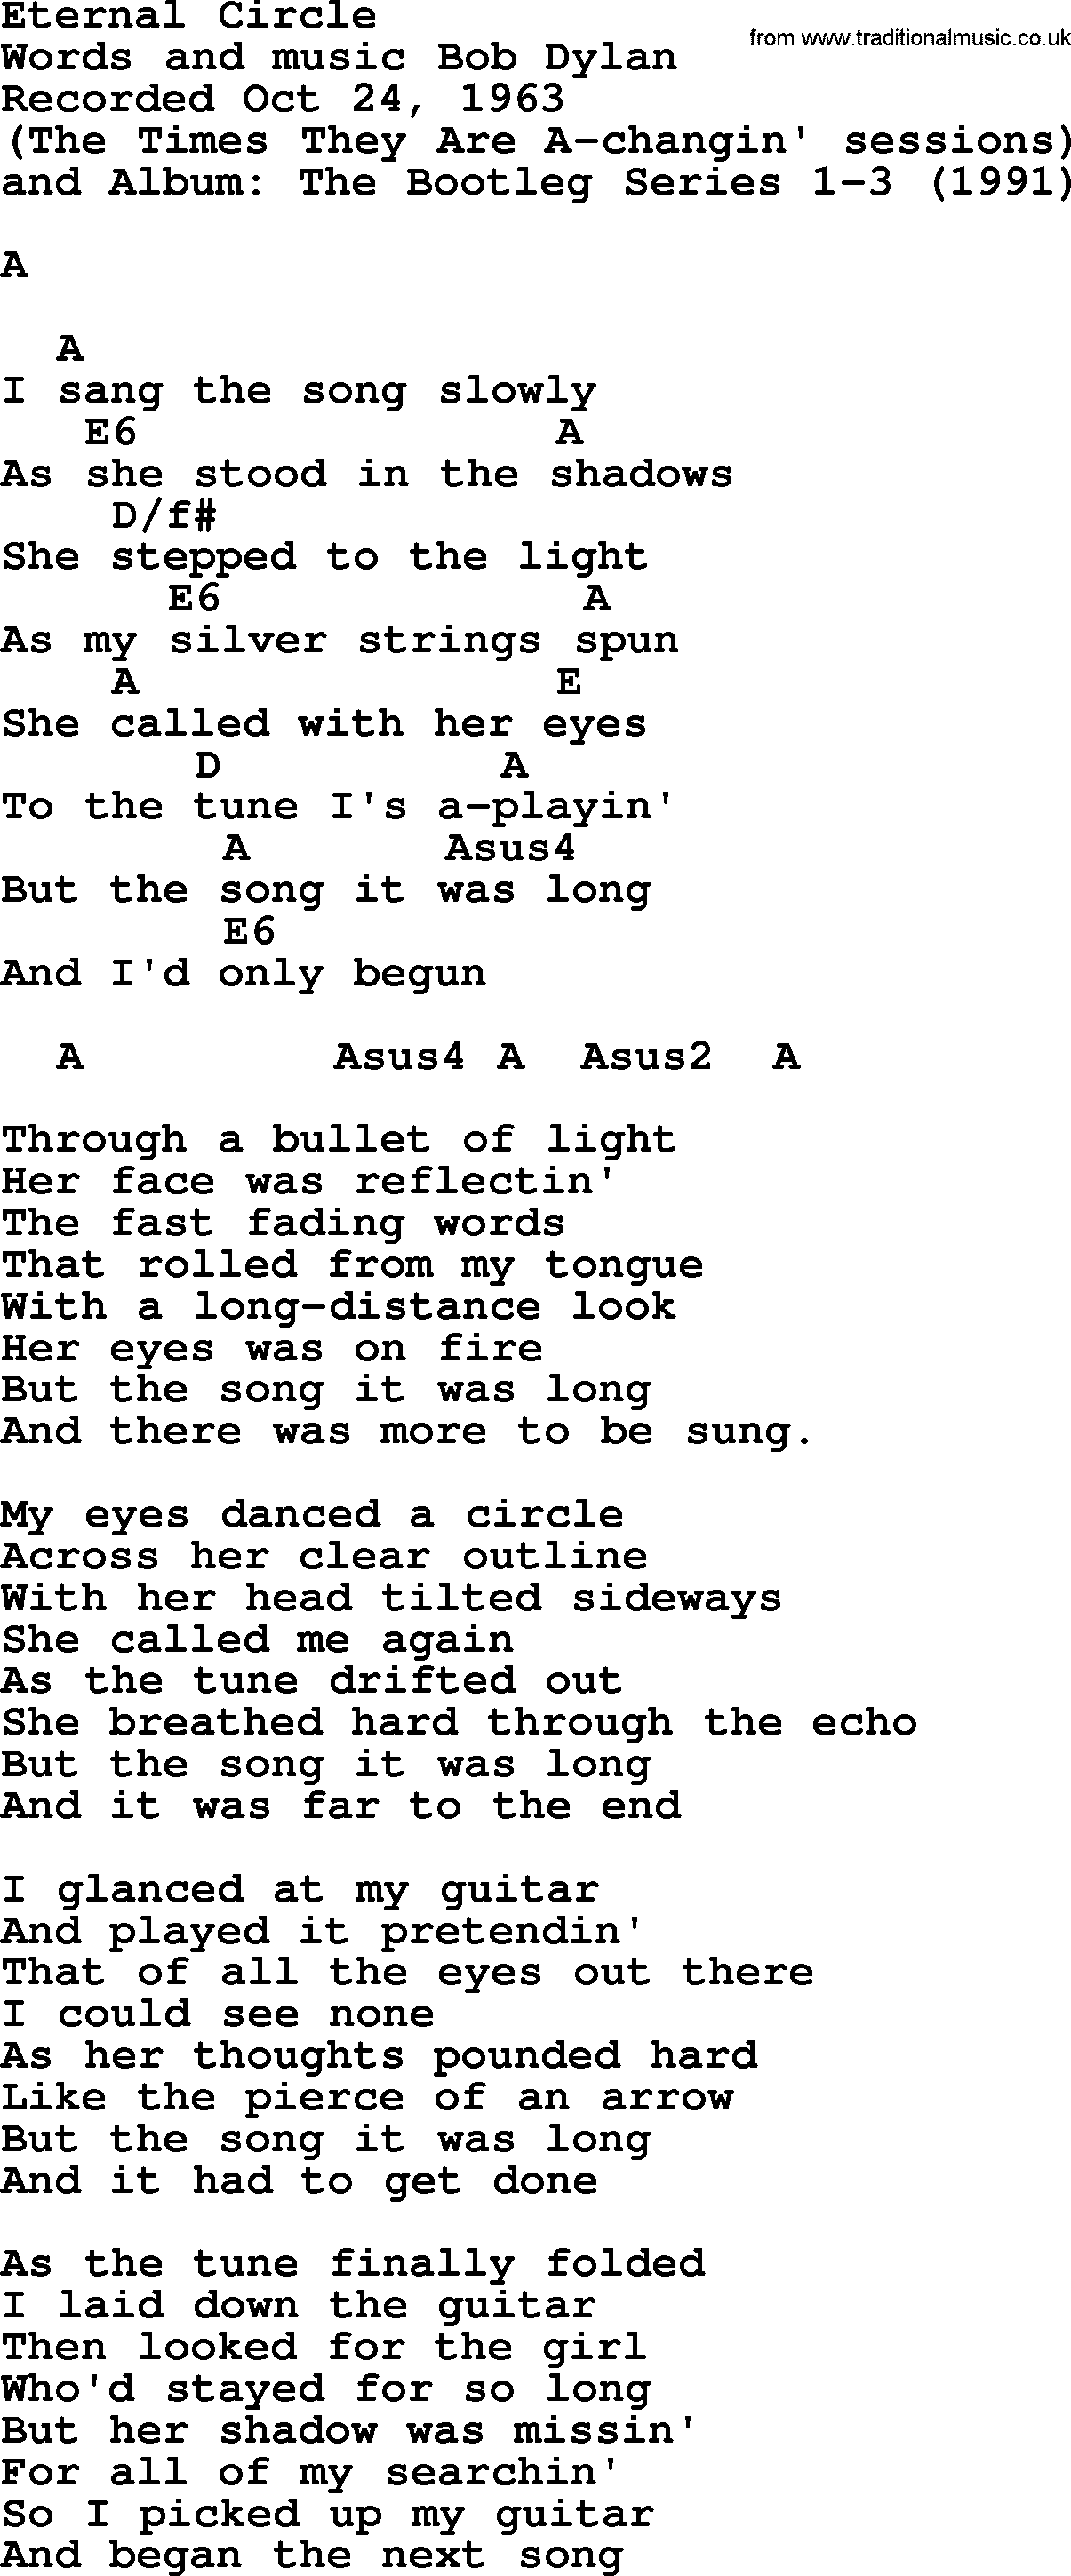 Bob Dylan Song Eternal Circle Lyrics And Chords